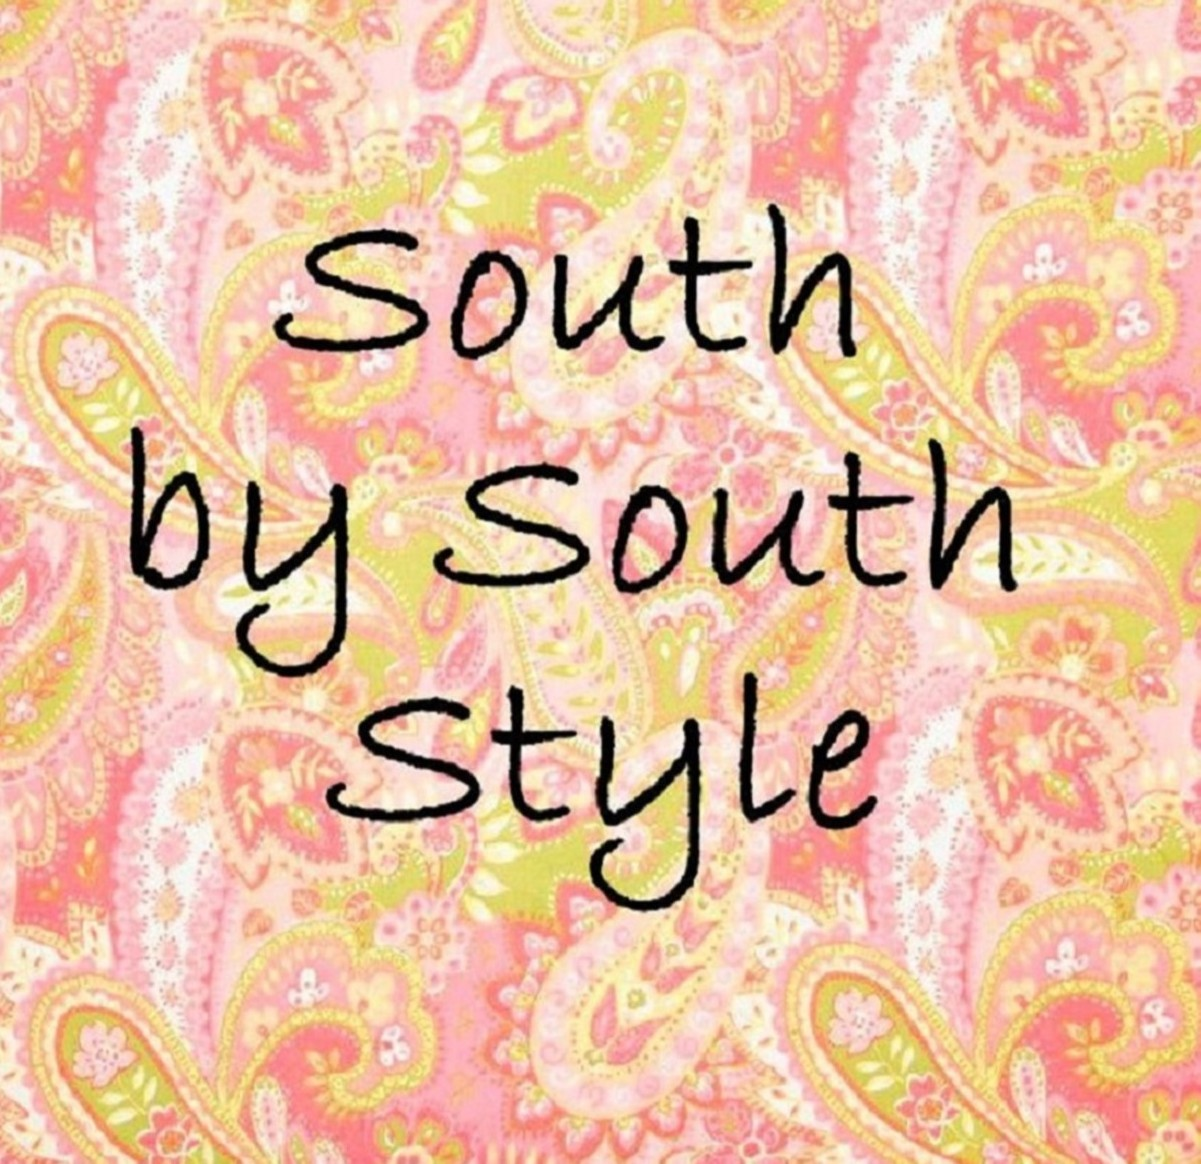 Shop at South by South Style, my eBay store